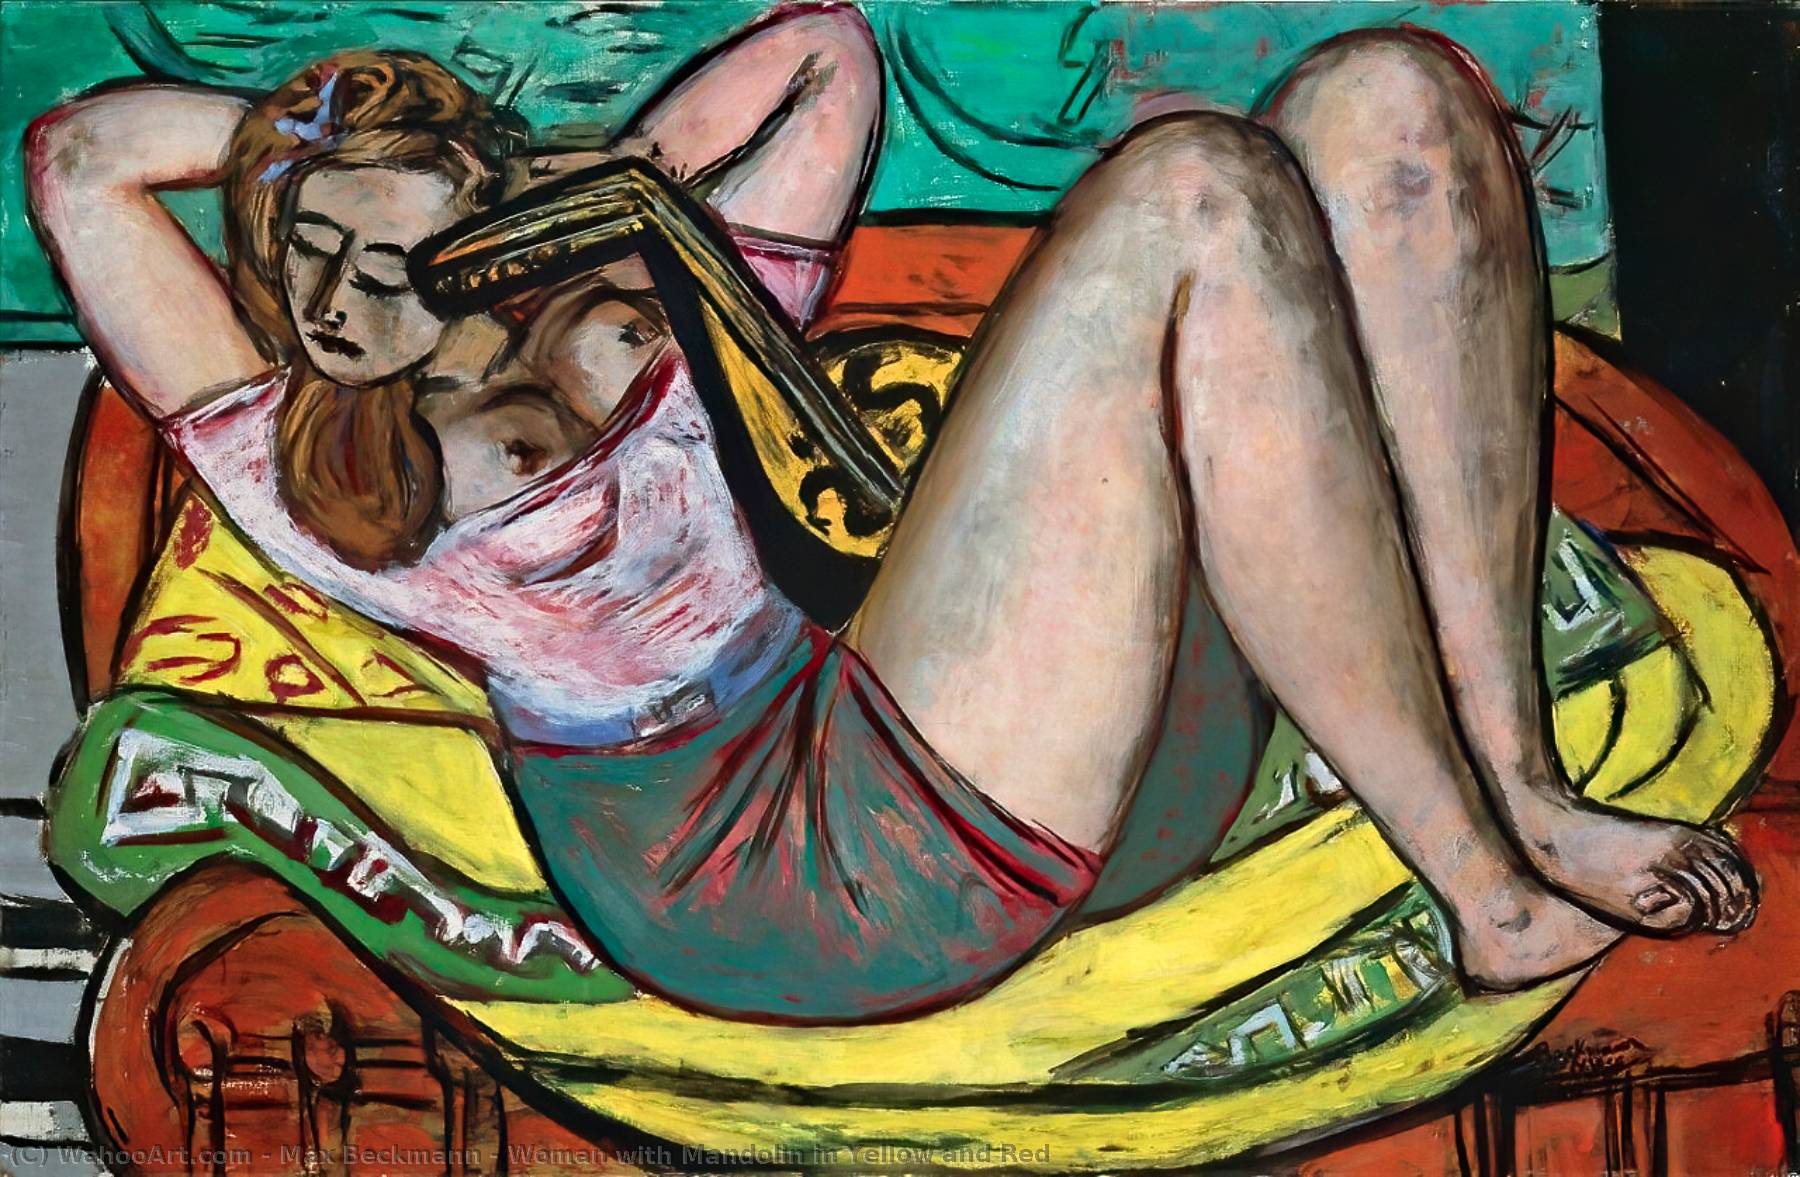 Woman with Mandolin in Yellow and Red by Max Beckmann (1884-1950, Germany)